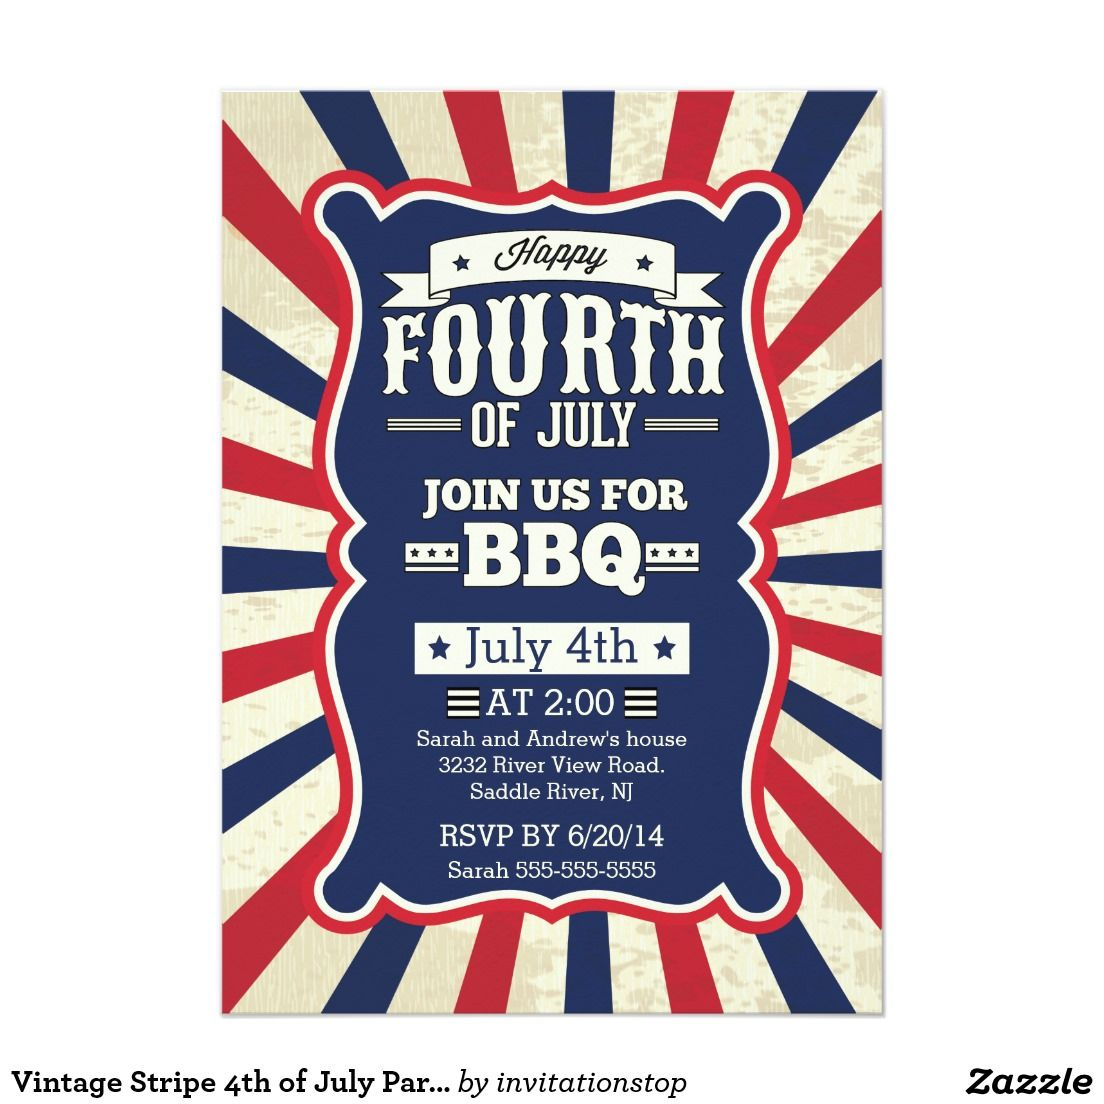 vintage stripe 4th of july party invitation in 2018 packed party